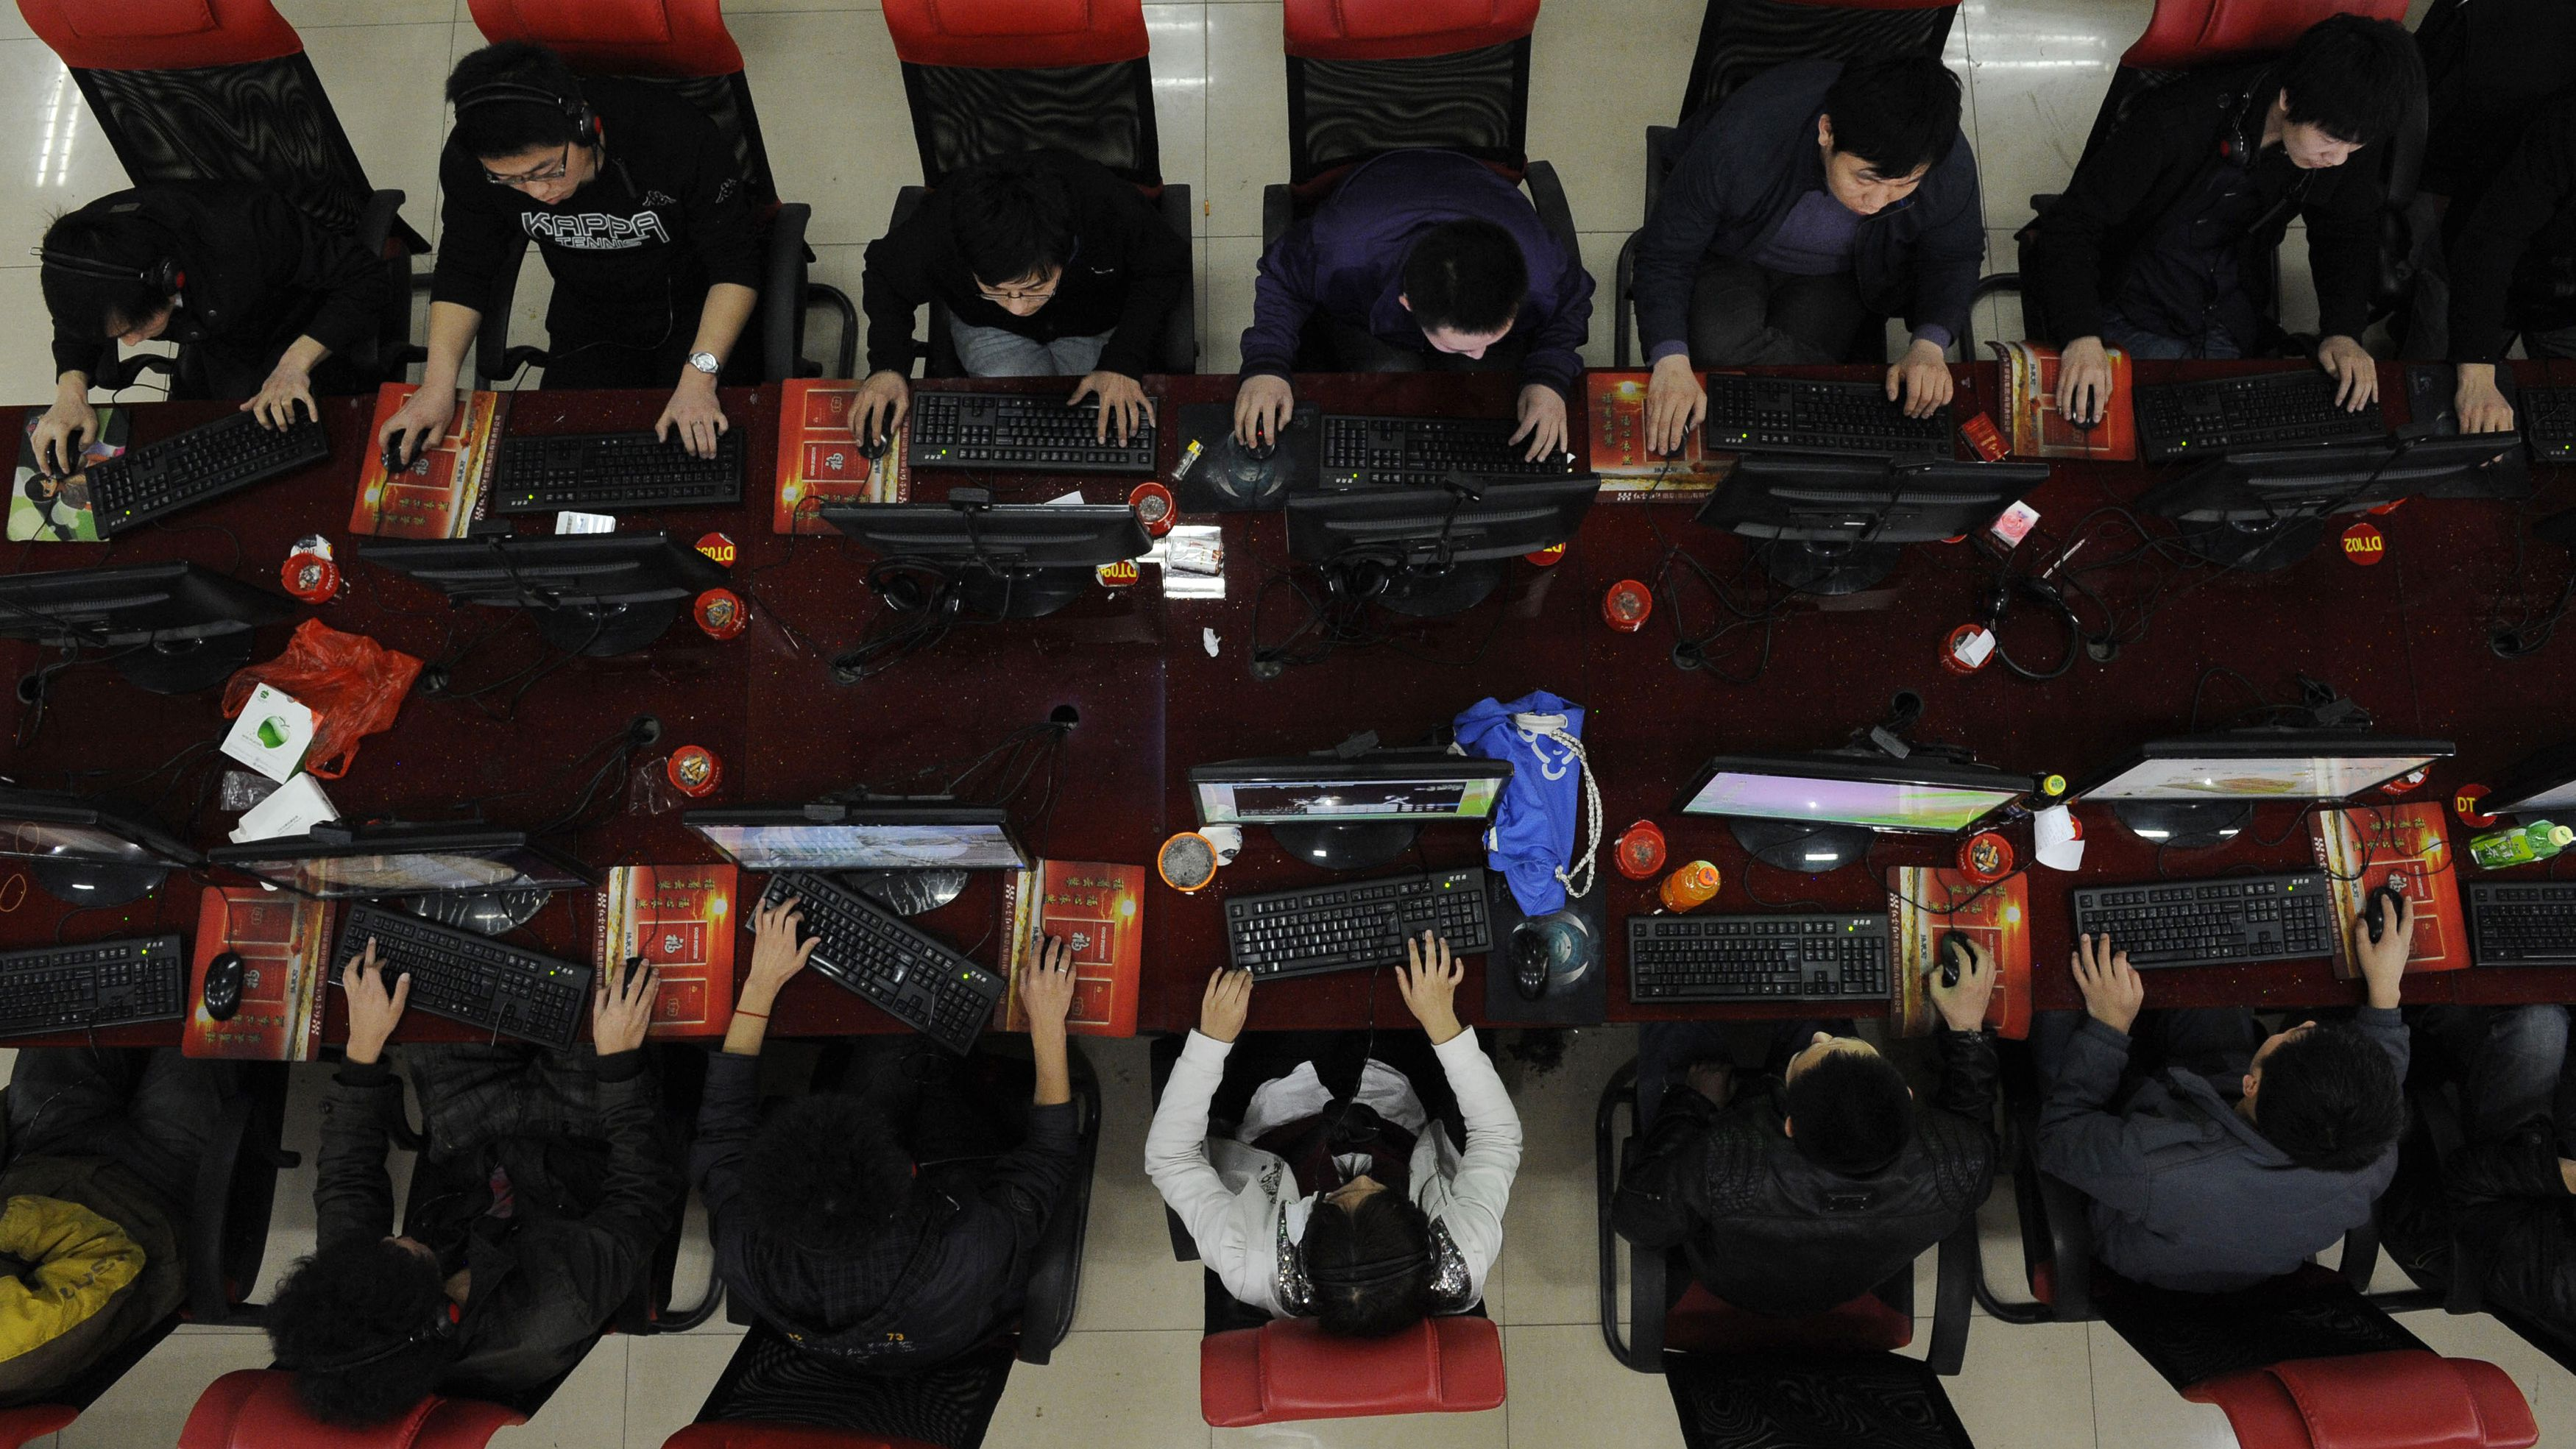 """People use the computer at an Internet cafe in Taiyuan, Shanxi province March 31, 2010. Google Inc blamed """"the great firewall"""" of China for blocking its Internet search service in the country on Tuesday, but said it did not know if the stoppage was a Chinese technical glitch or a deliberate move in their face-off over Internet censorship. REUTERS/Stringer"""